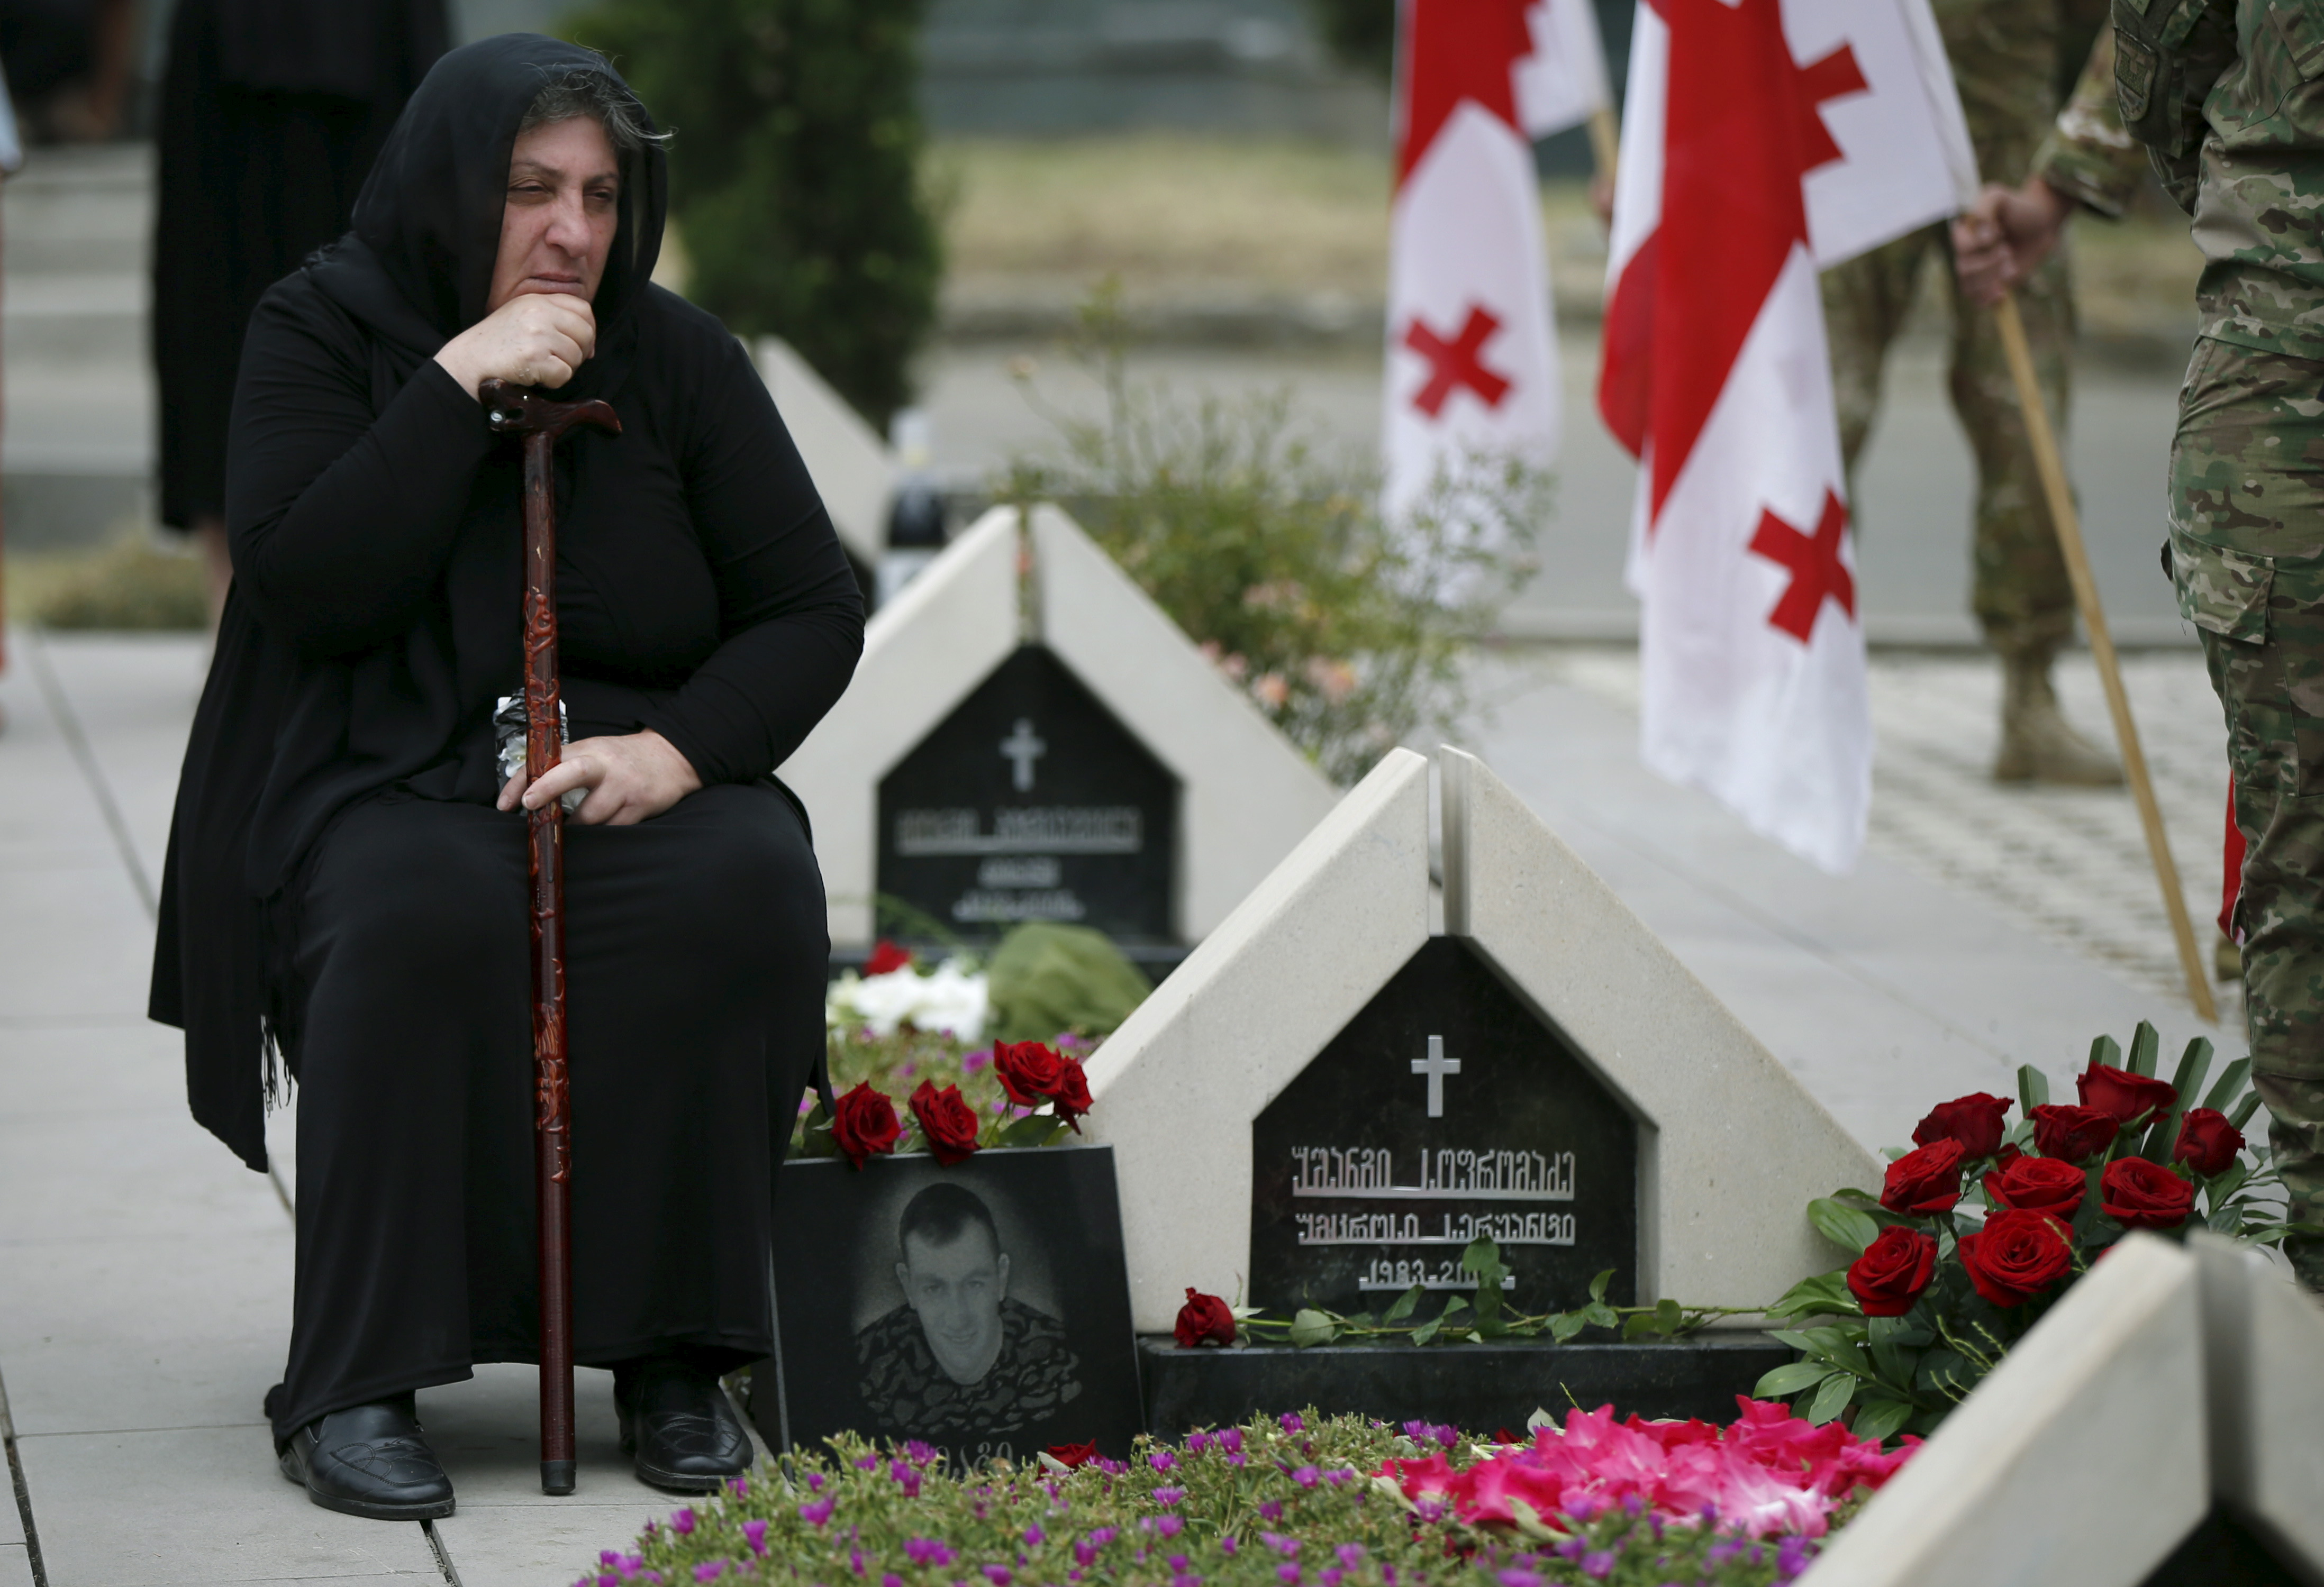 FILE - A woman mourns at the grave of a Georgian soldier killed during Georgia's conflict with Russia over the breakaway region of South Ossetia in 2008 during a ceremony at the memorial cemetery in Tbilisi, Georgia, Aug. 8, 2015.